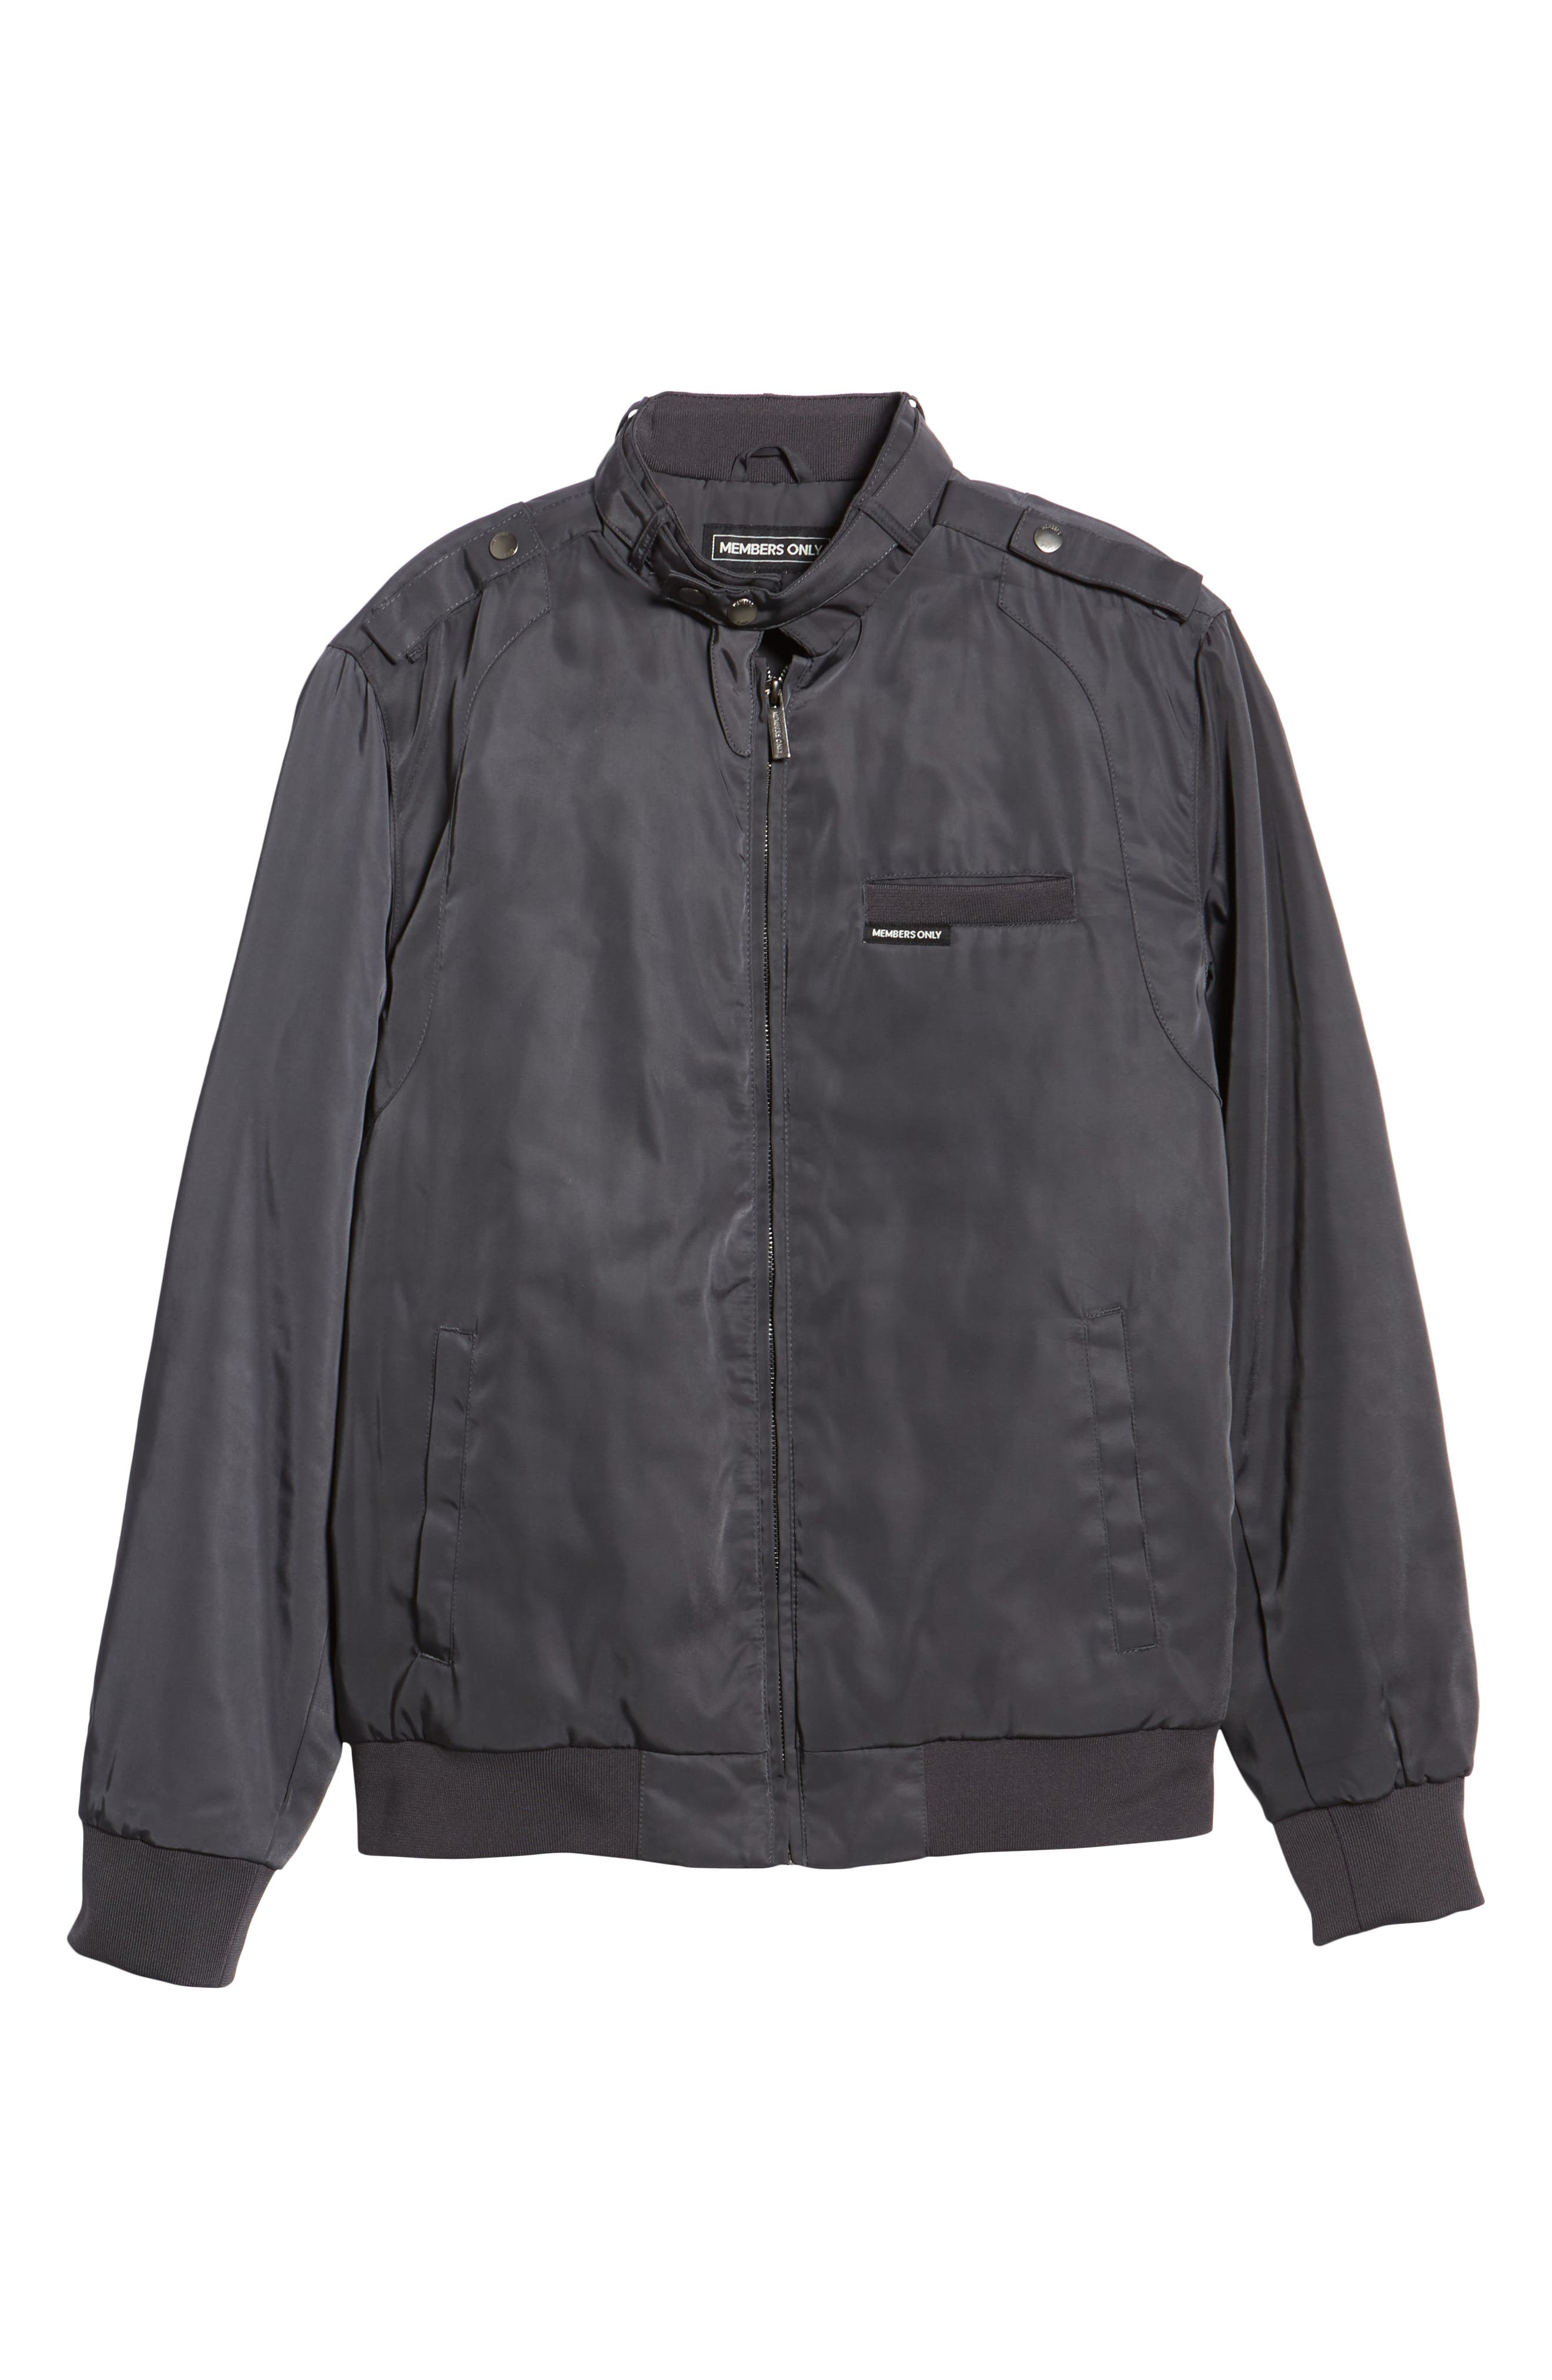 Iconic Racer Jacket,                             Alternate thumbnail 5, color,                             CHARCOAL